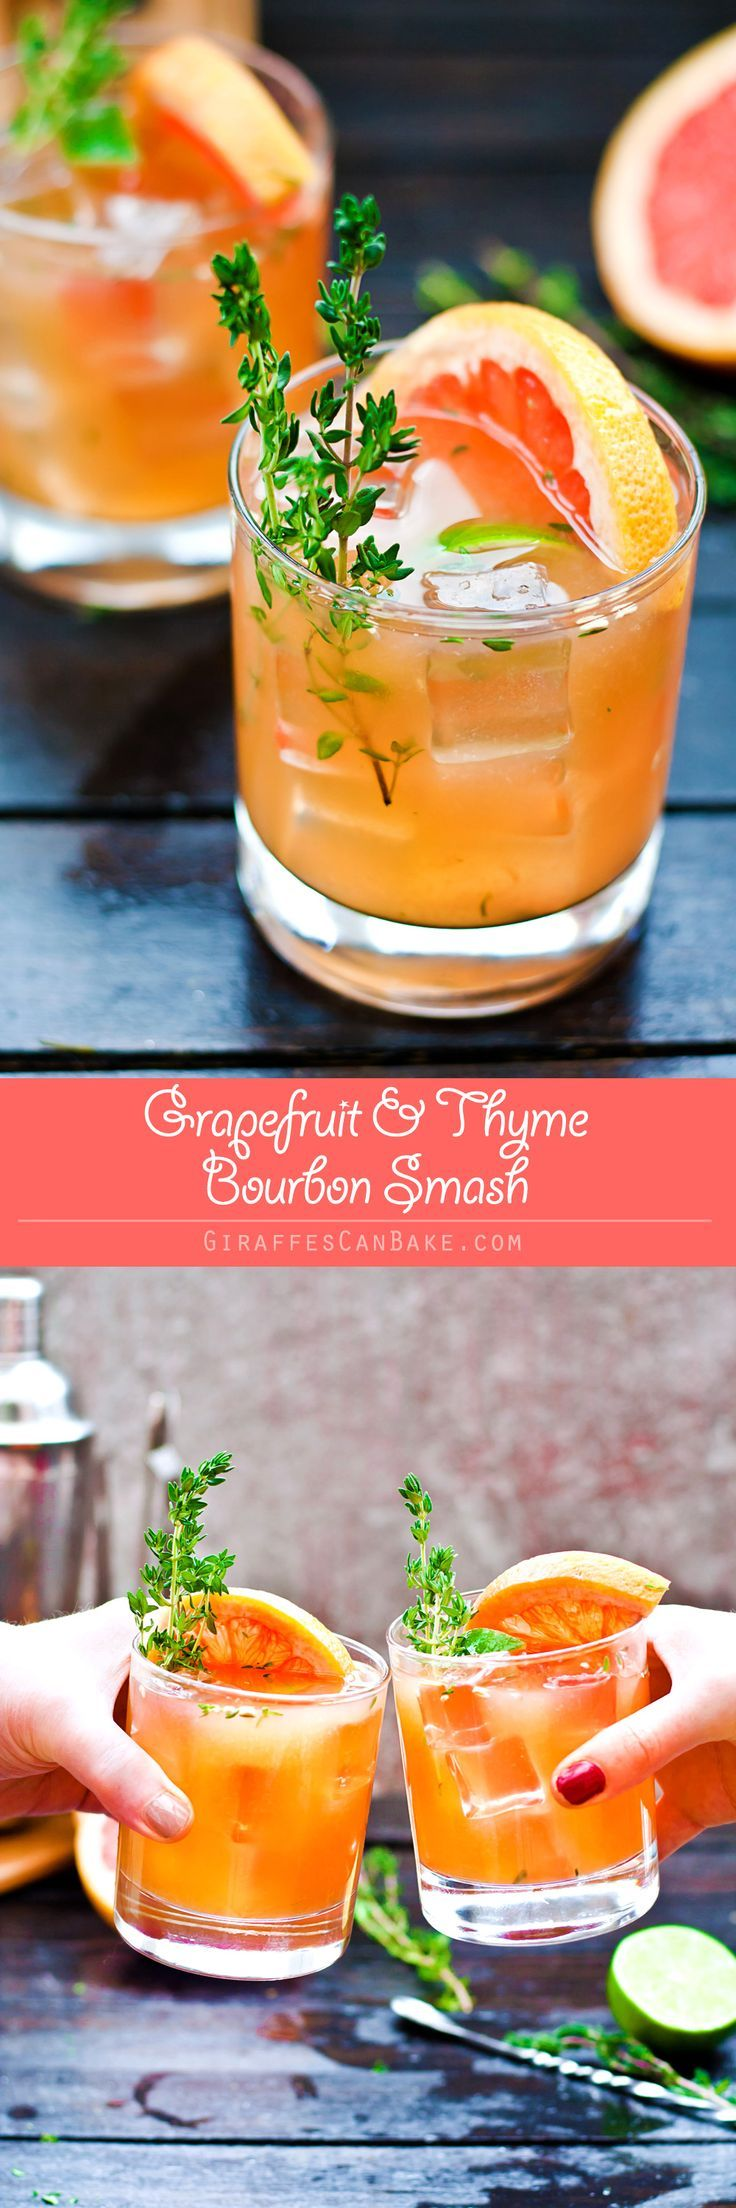 Grapefruit and Thyme Bourbon Smash | Rezept | Pinterest | Getränke ...